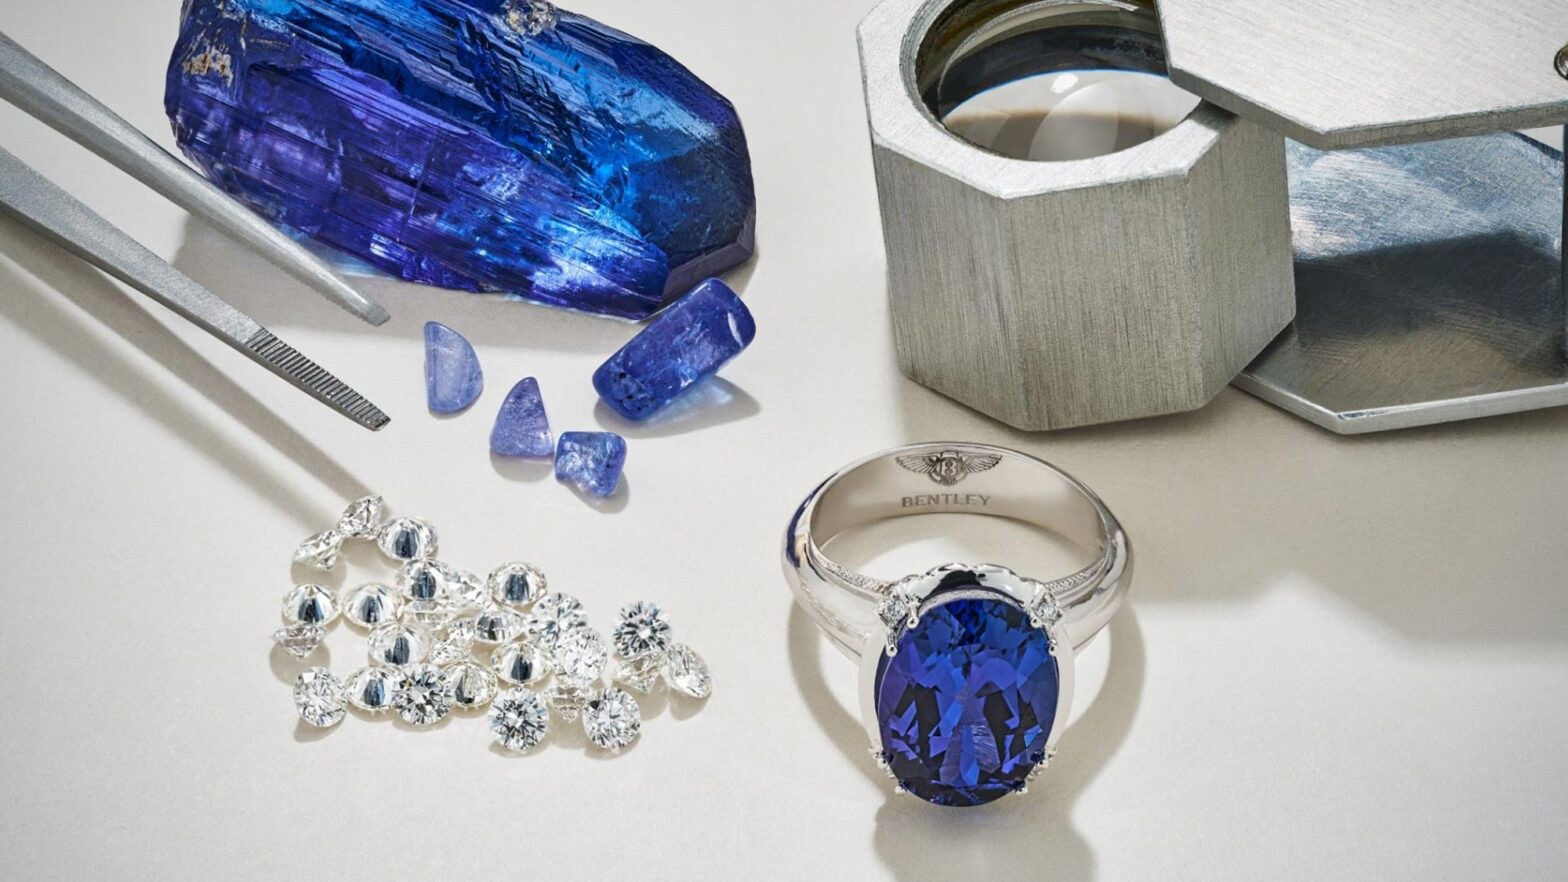 Bentley Jewellery Precious Gemstone Collection